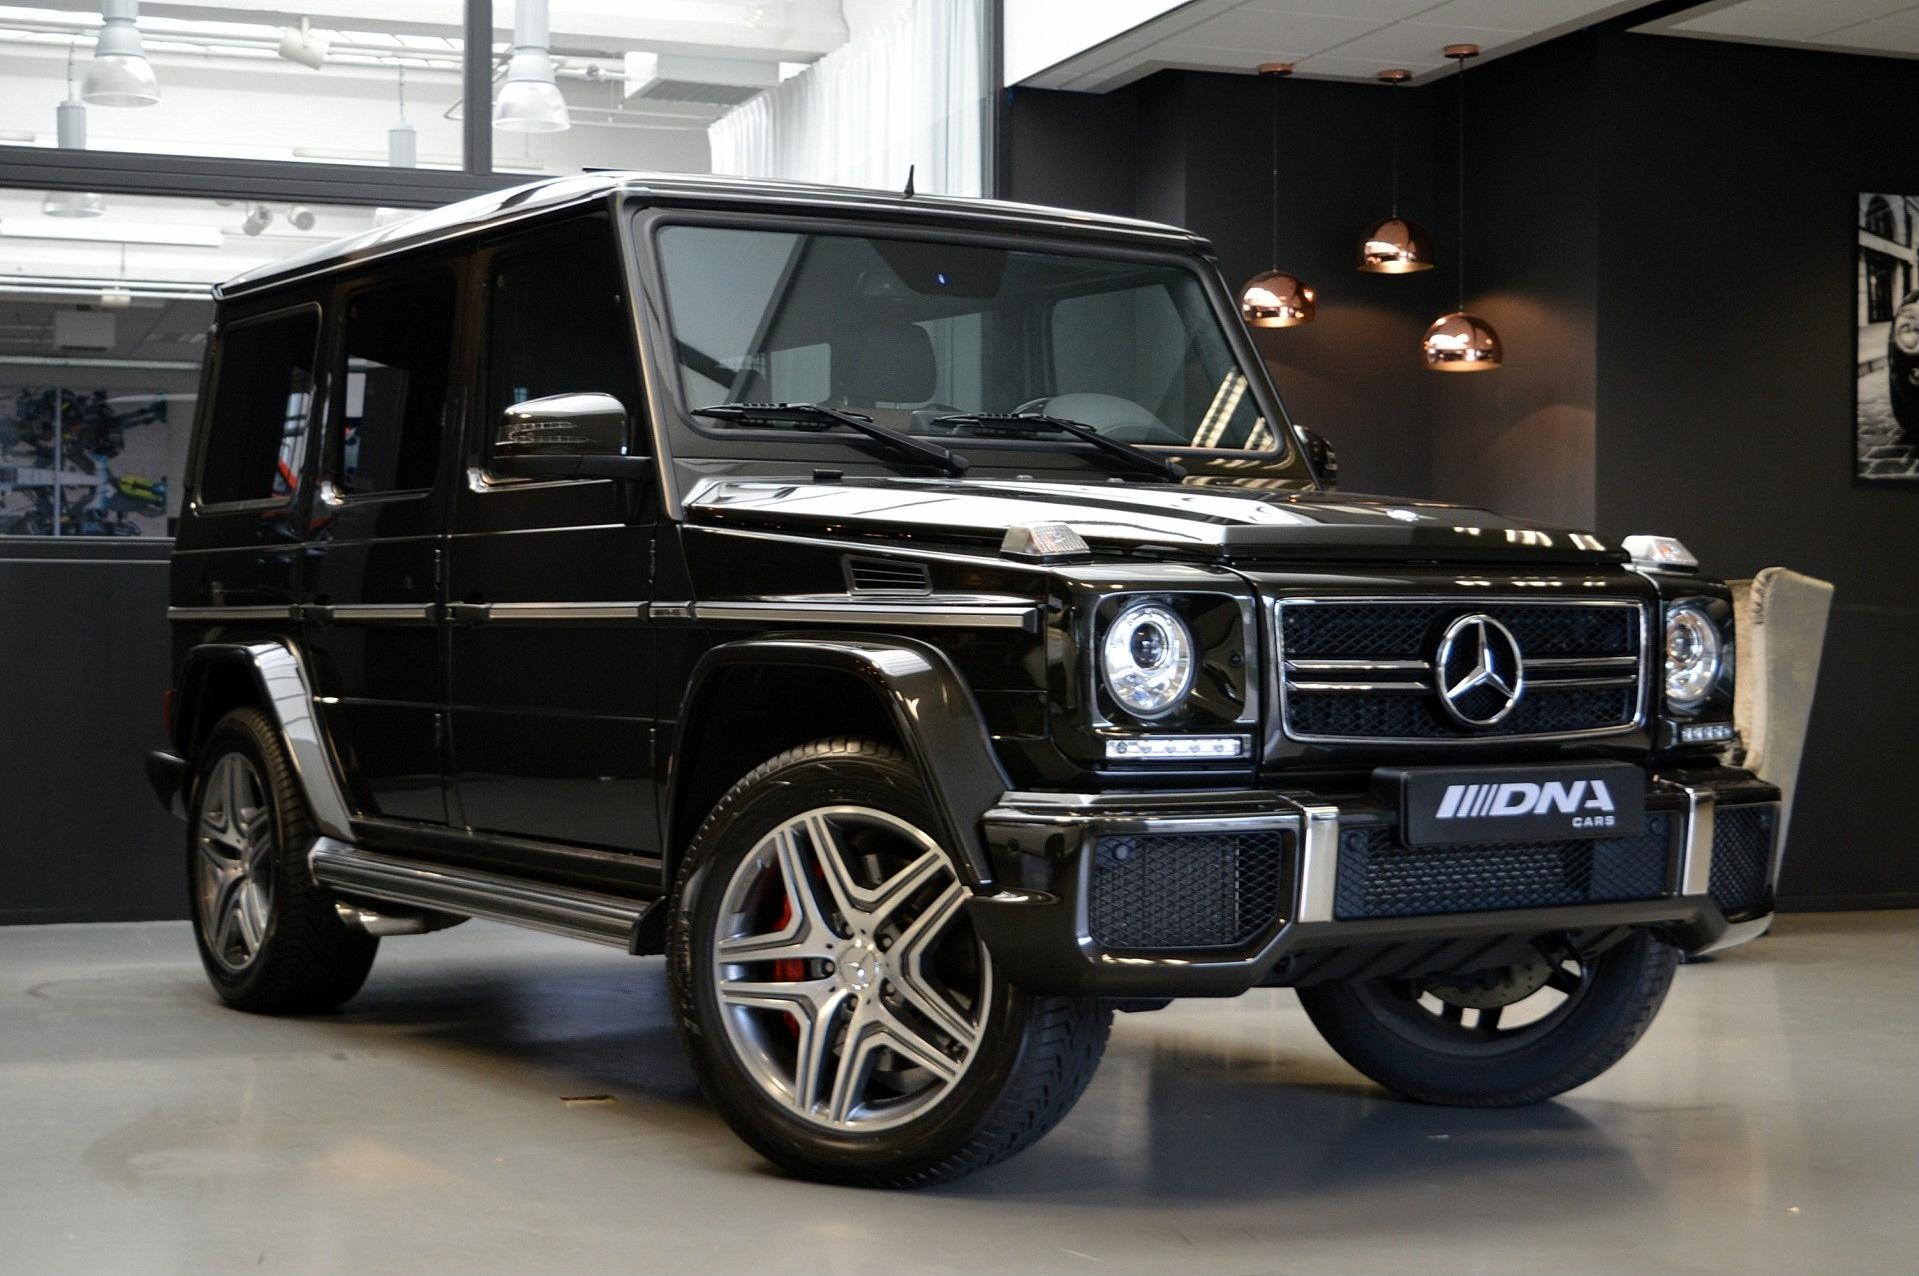 mercedes benz g klasse g63 amg dna cars. Black Bedroom Furniture Sets. Home Design Ideas